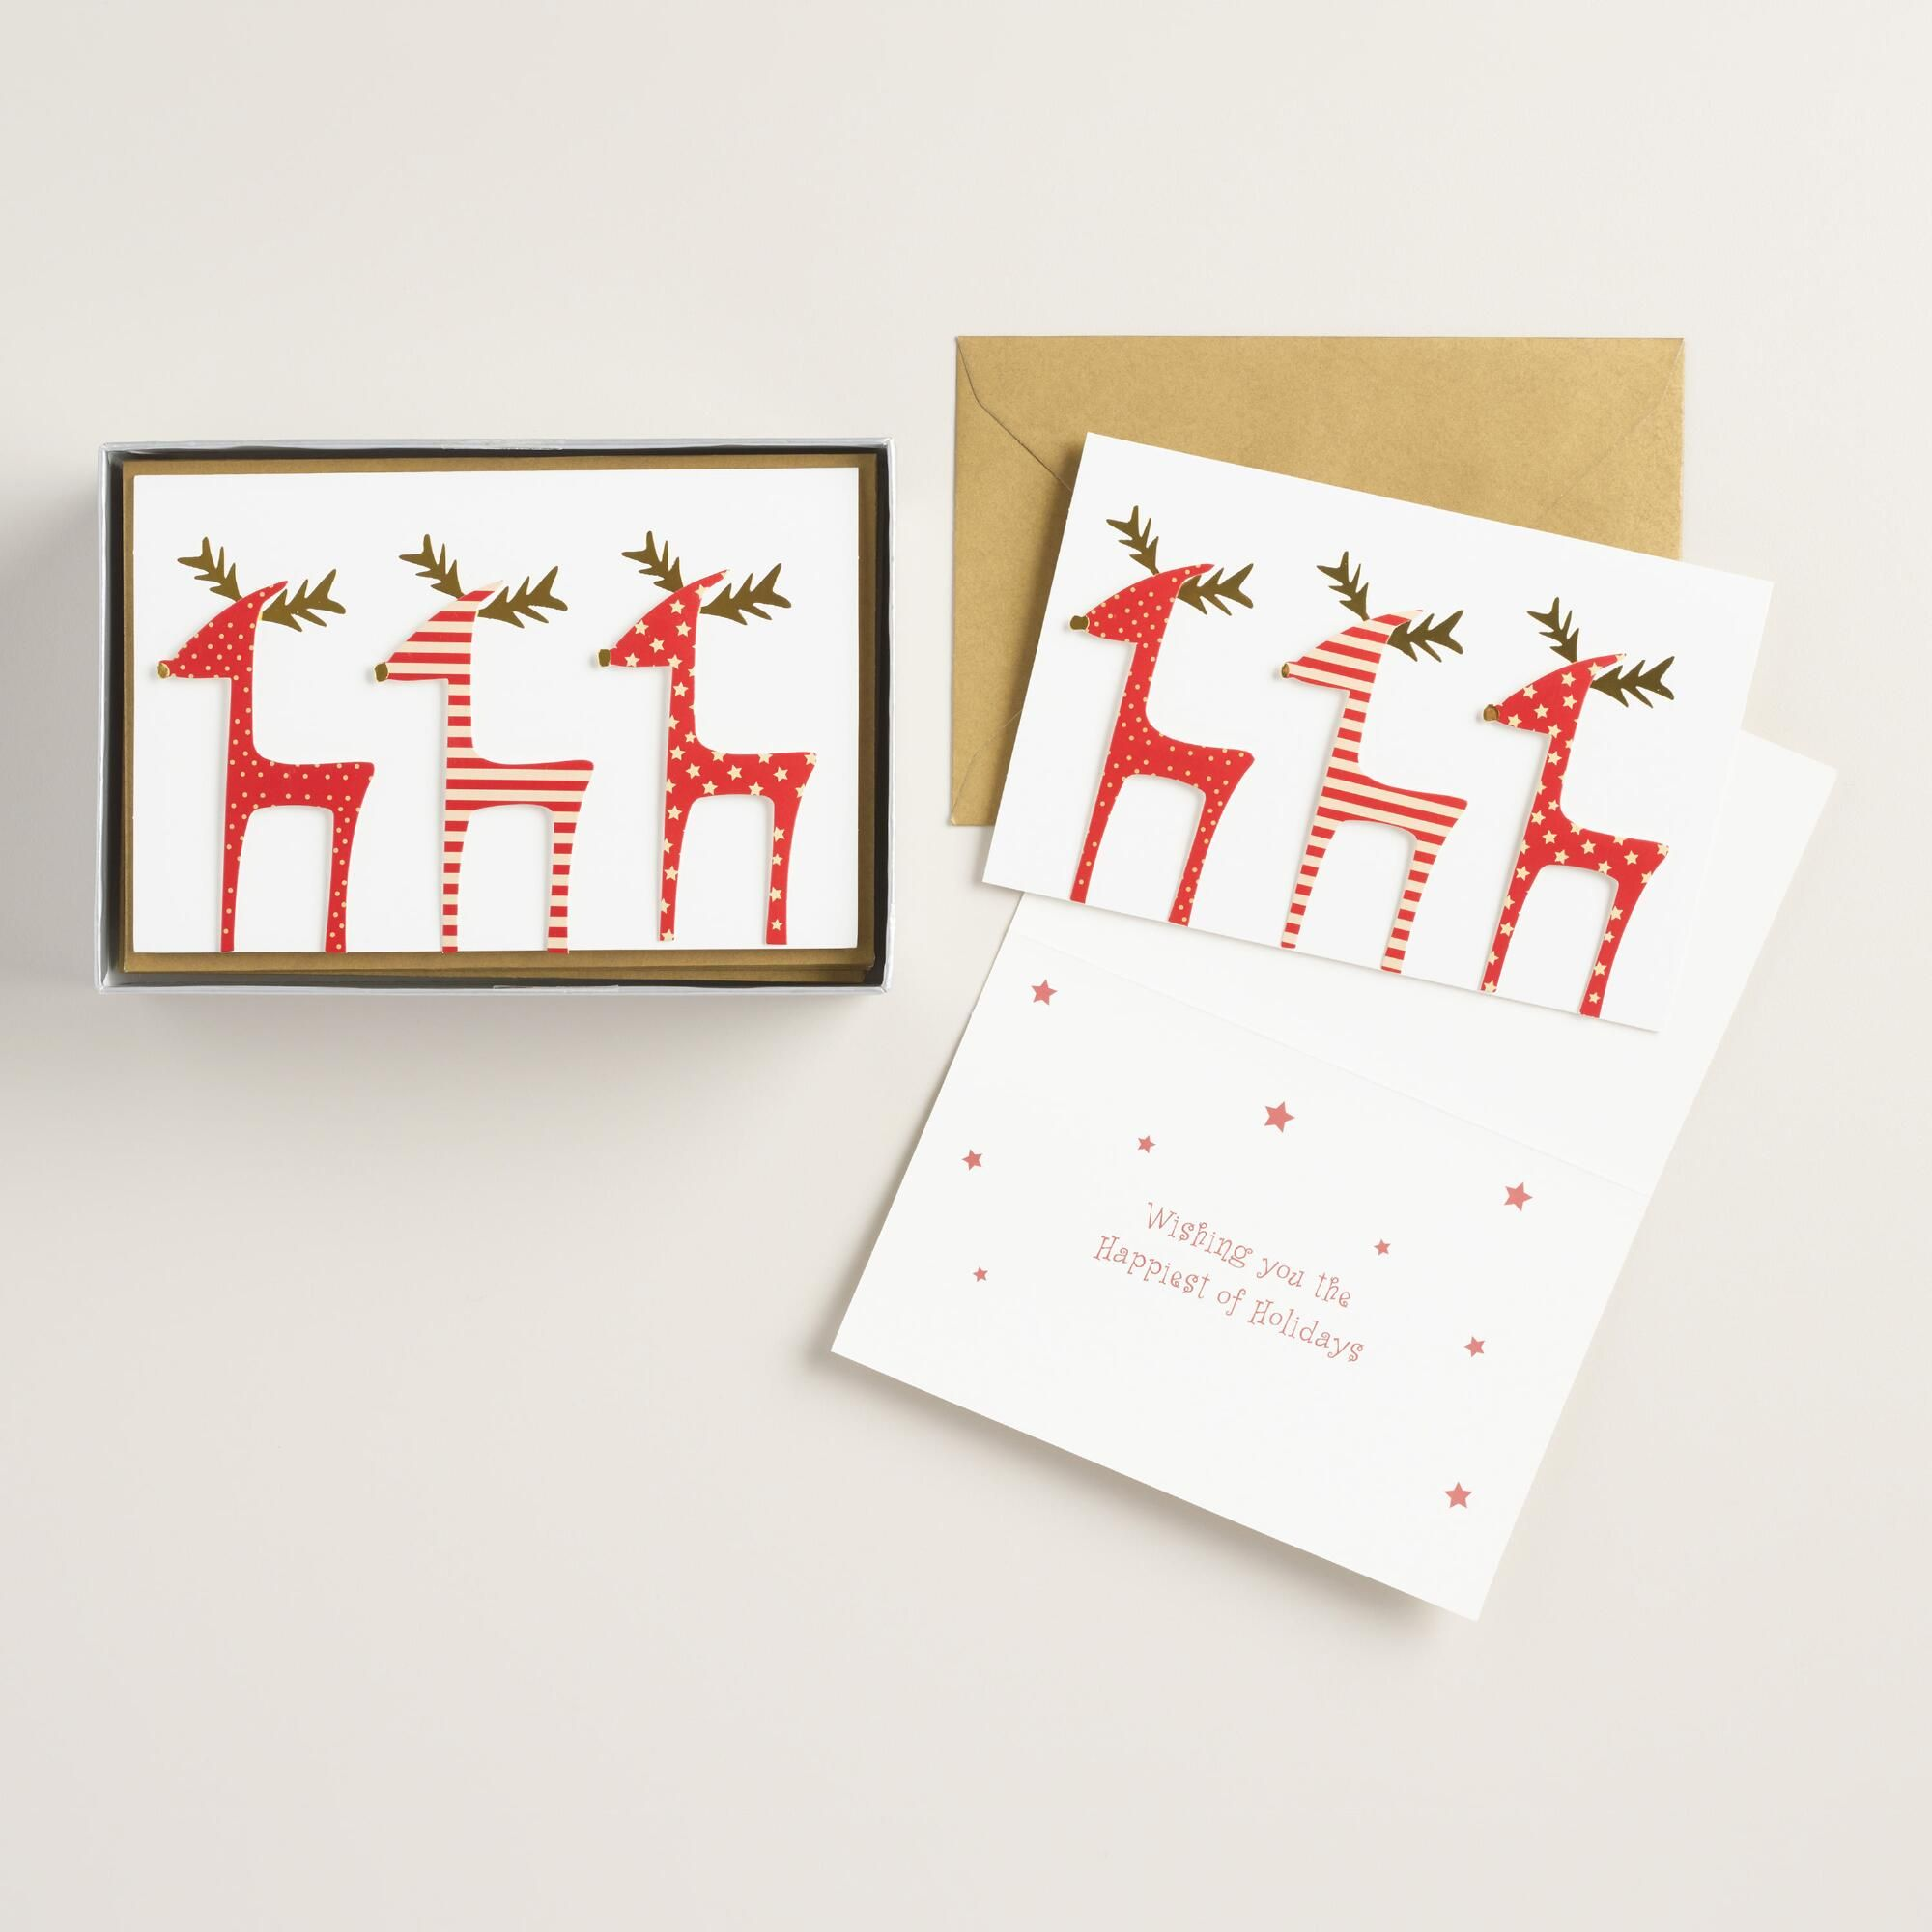 A merry way to wish friends and family a happy holiday, these cards are each decorated with three jolly red reindeer accented with gold foil.